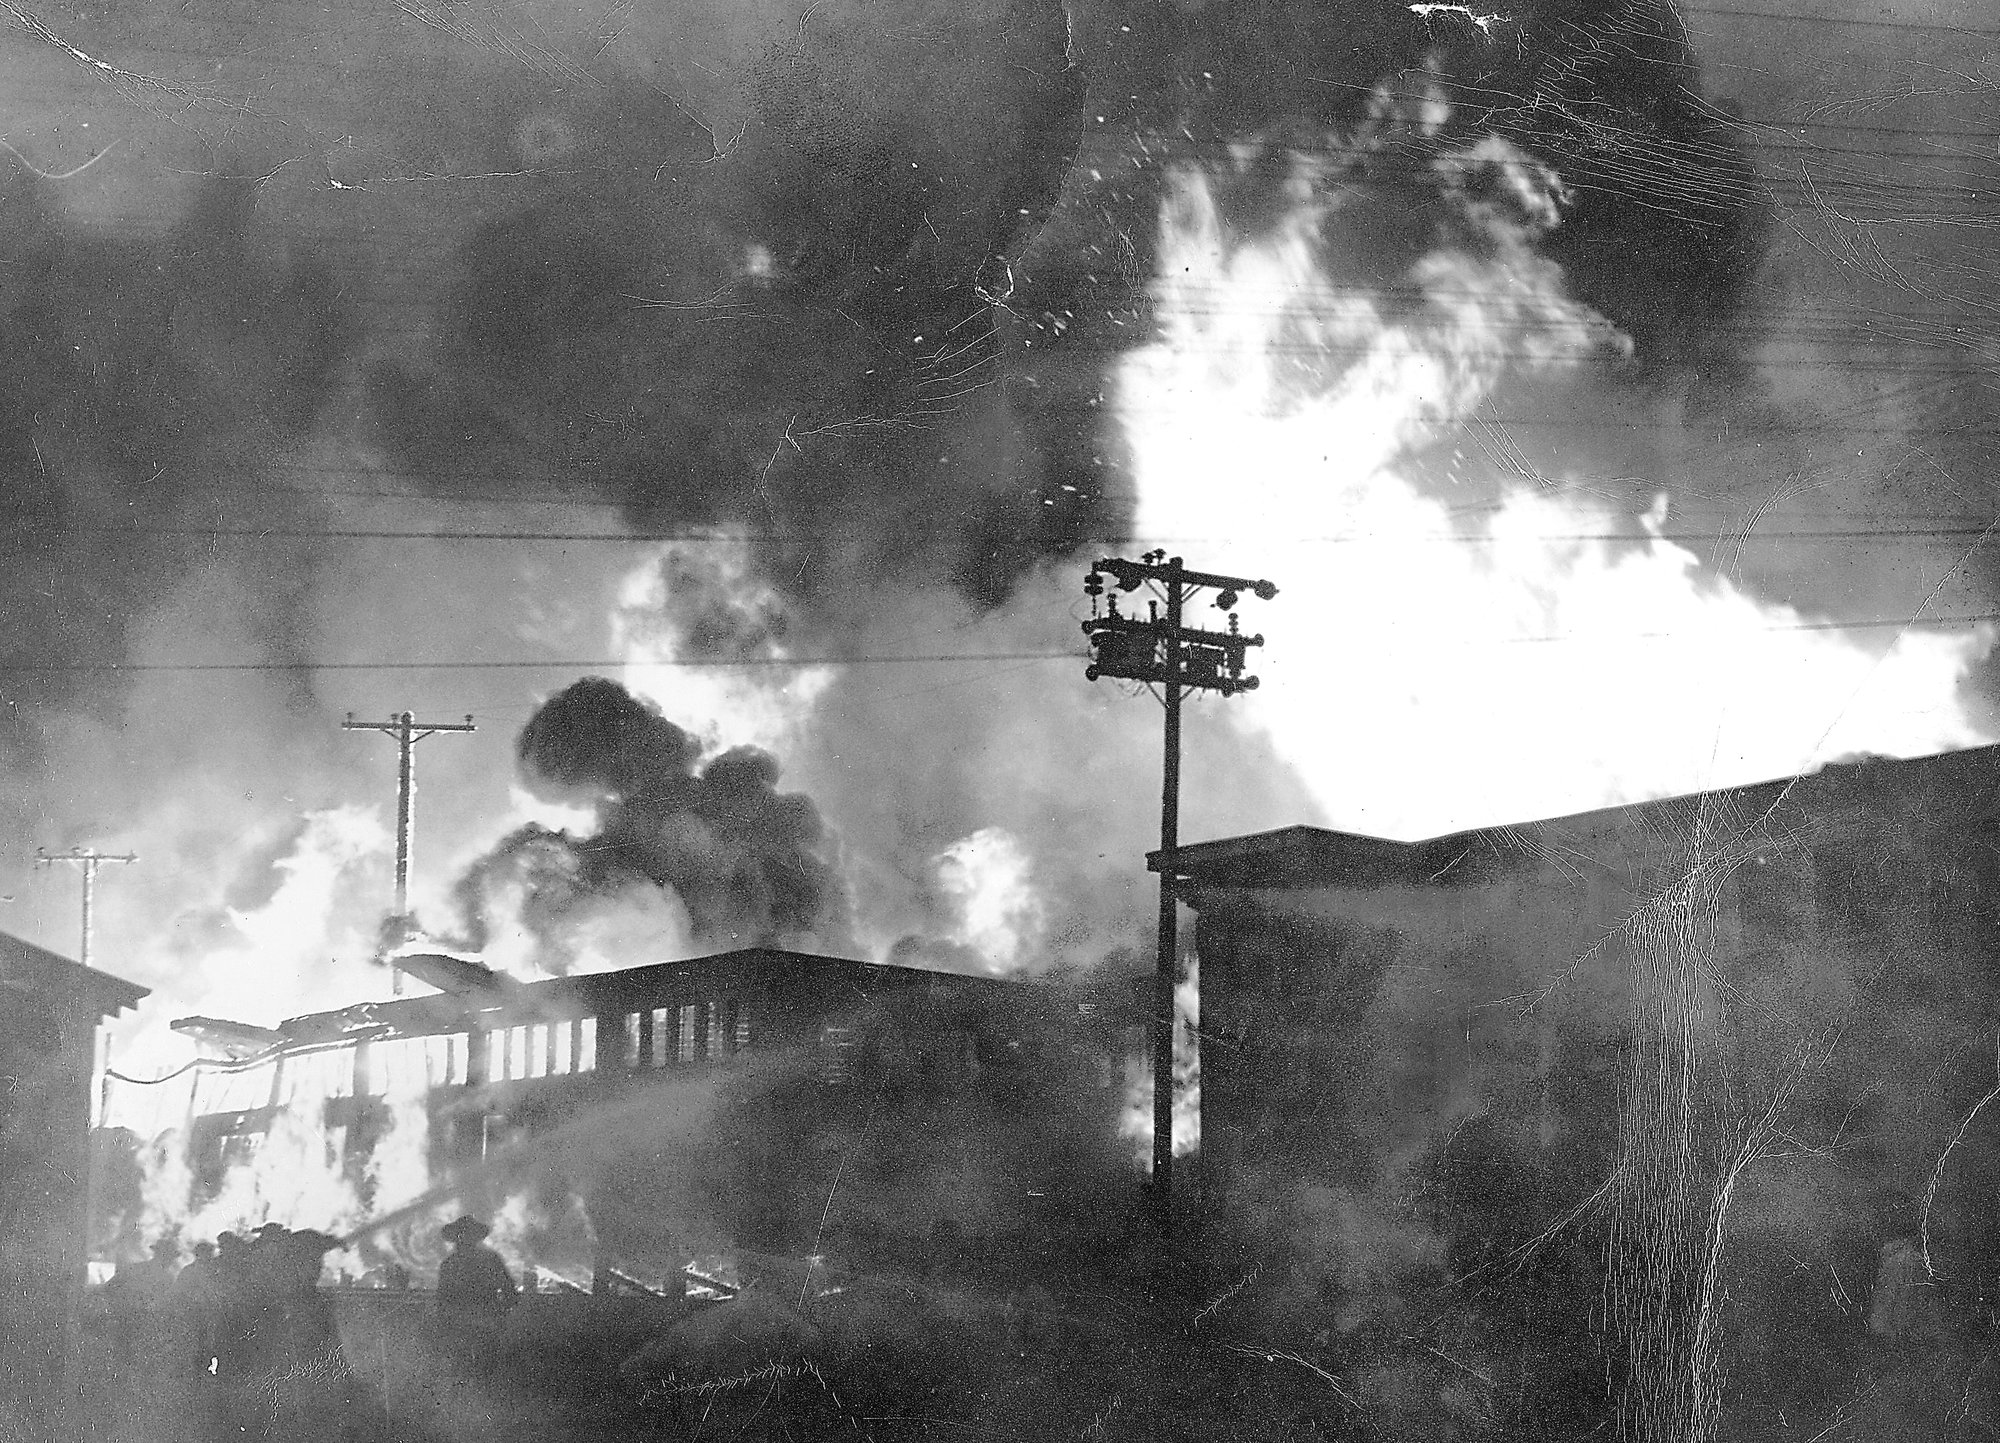 Sumter Daily Item photographer Heyward Crowson photographed a boxcar explosion at a Sumter railroad and won first place in the annual press awards contest for his work. The car filled with explosives caught fire in September 1968 and exploded.